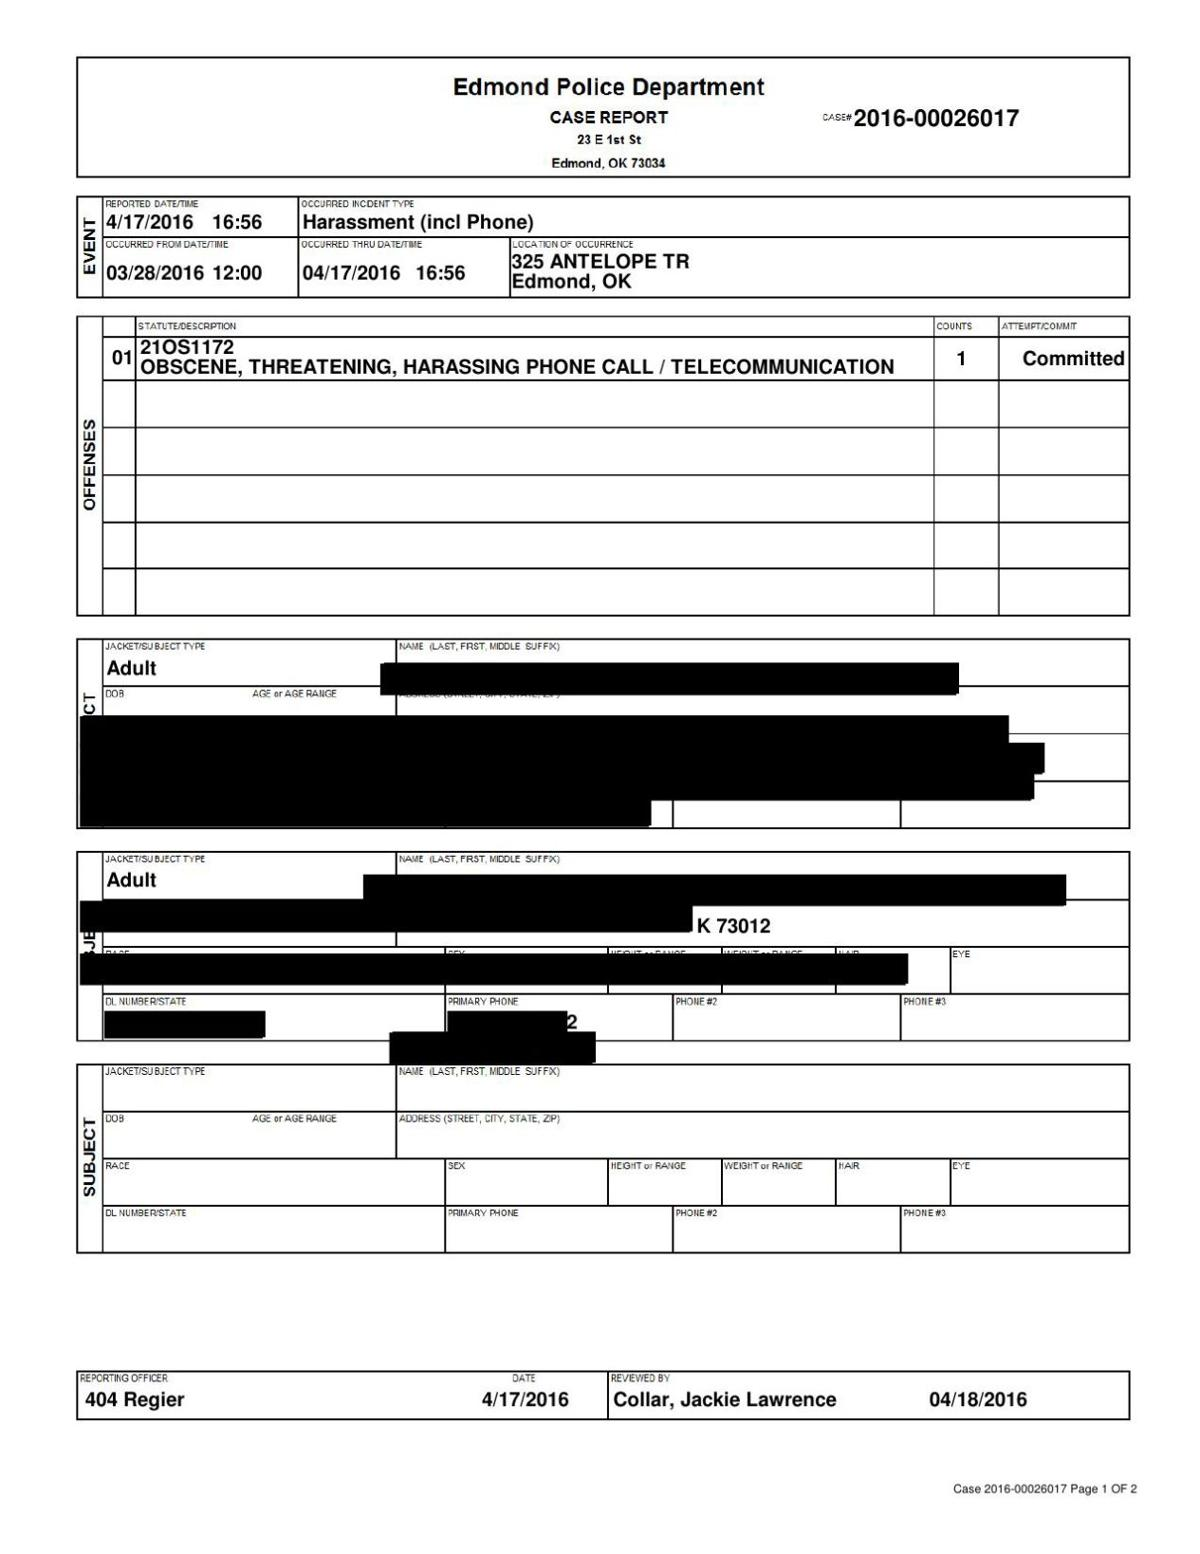 April 17, 2016 Oklahoma PD report on harassment claim